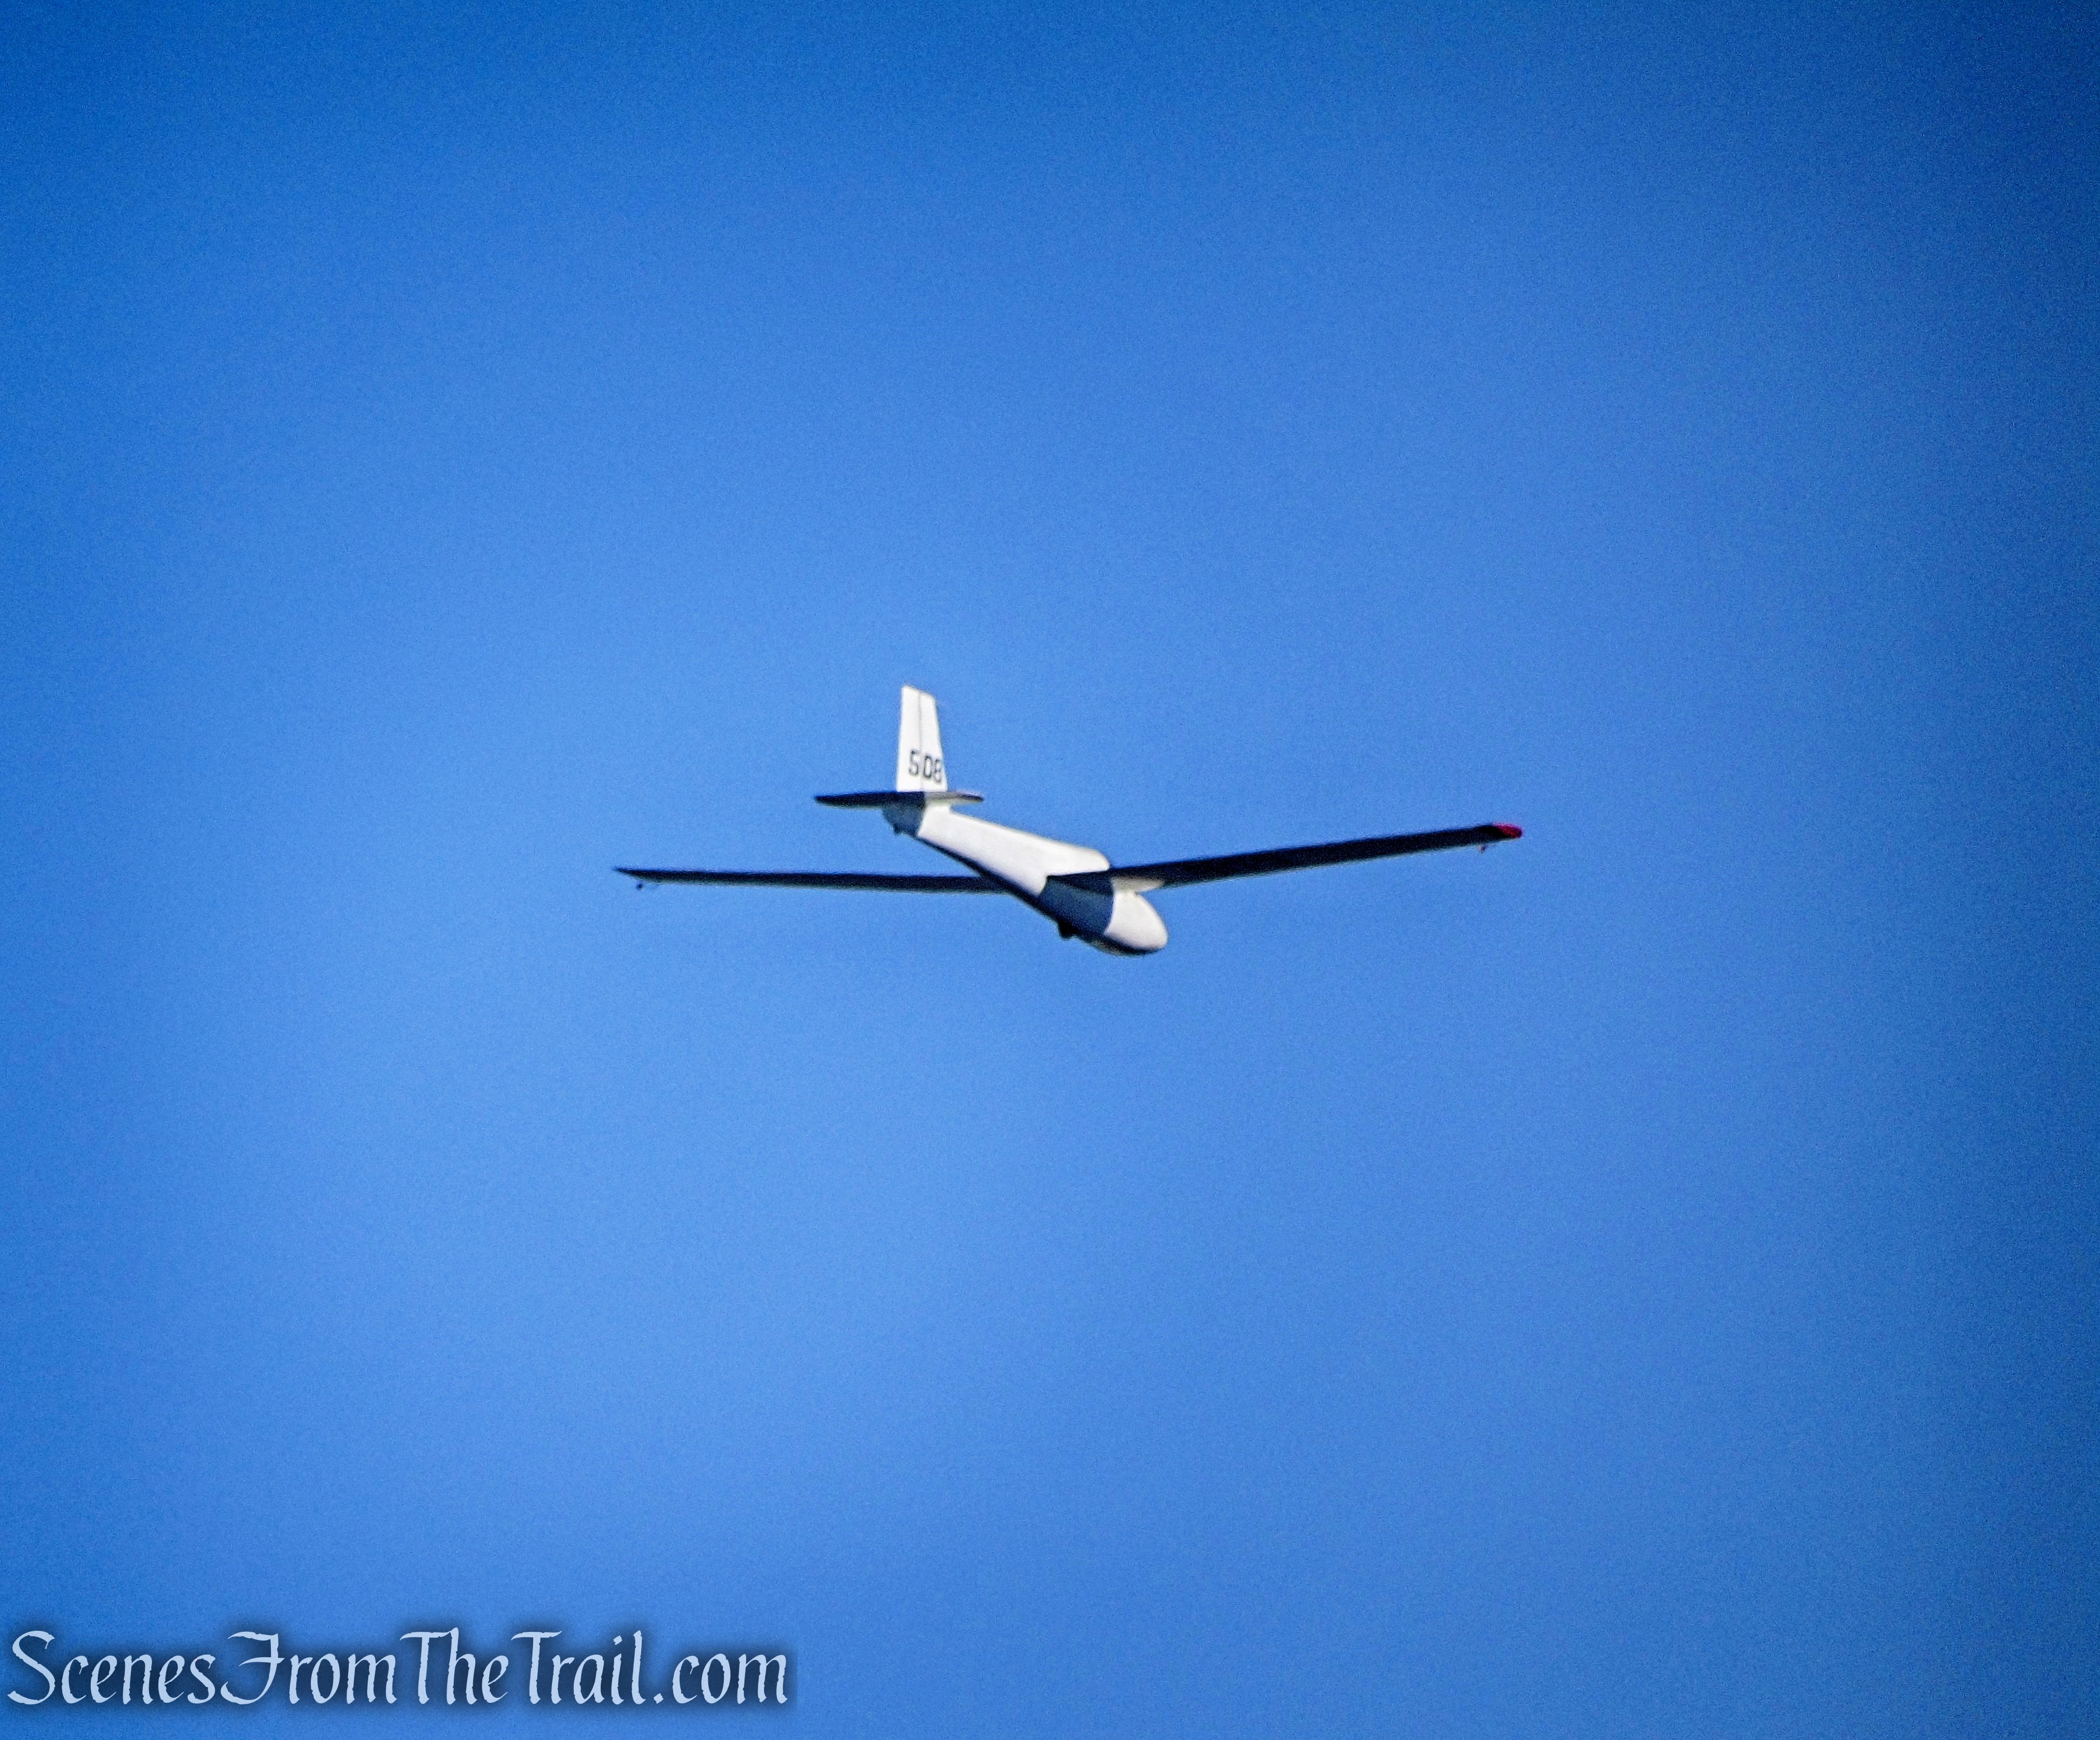 A glider floating by in the early morning